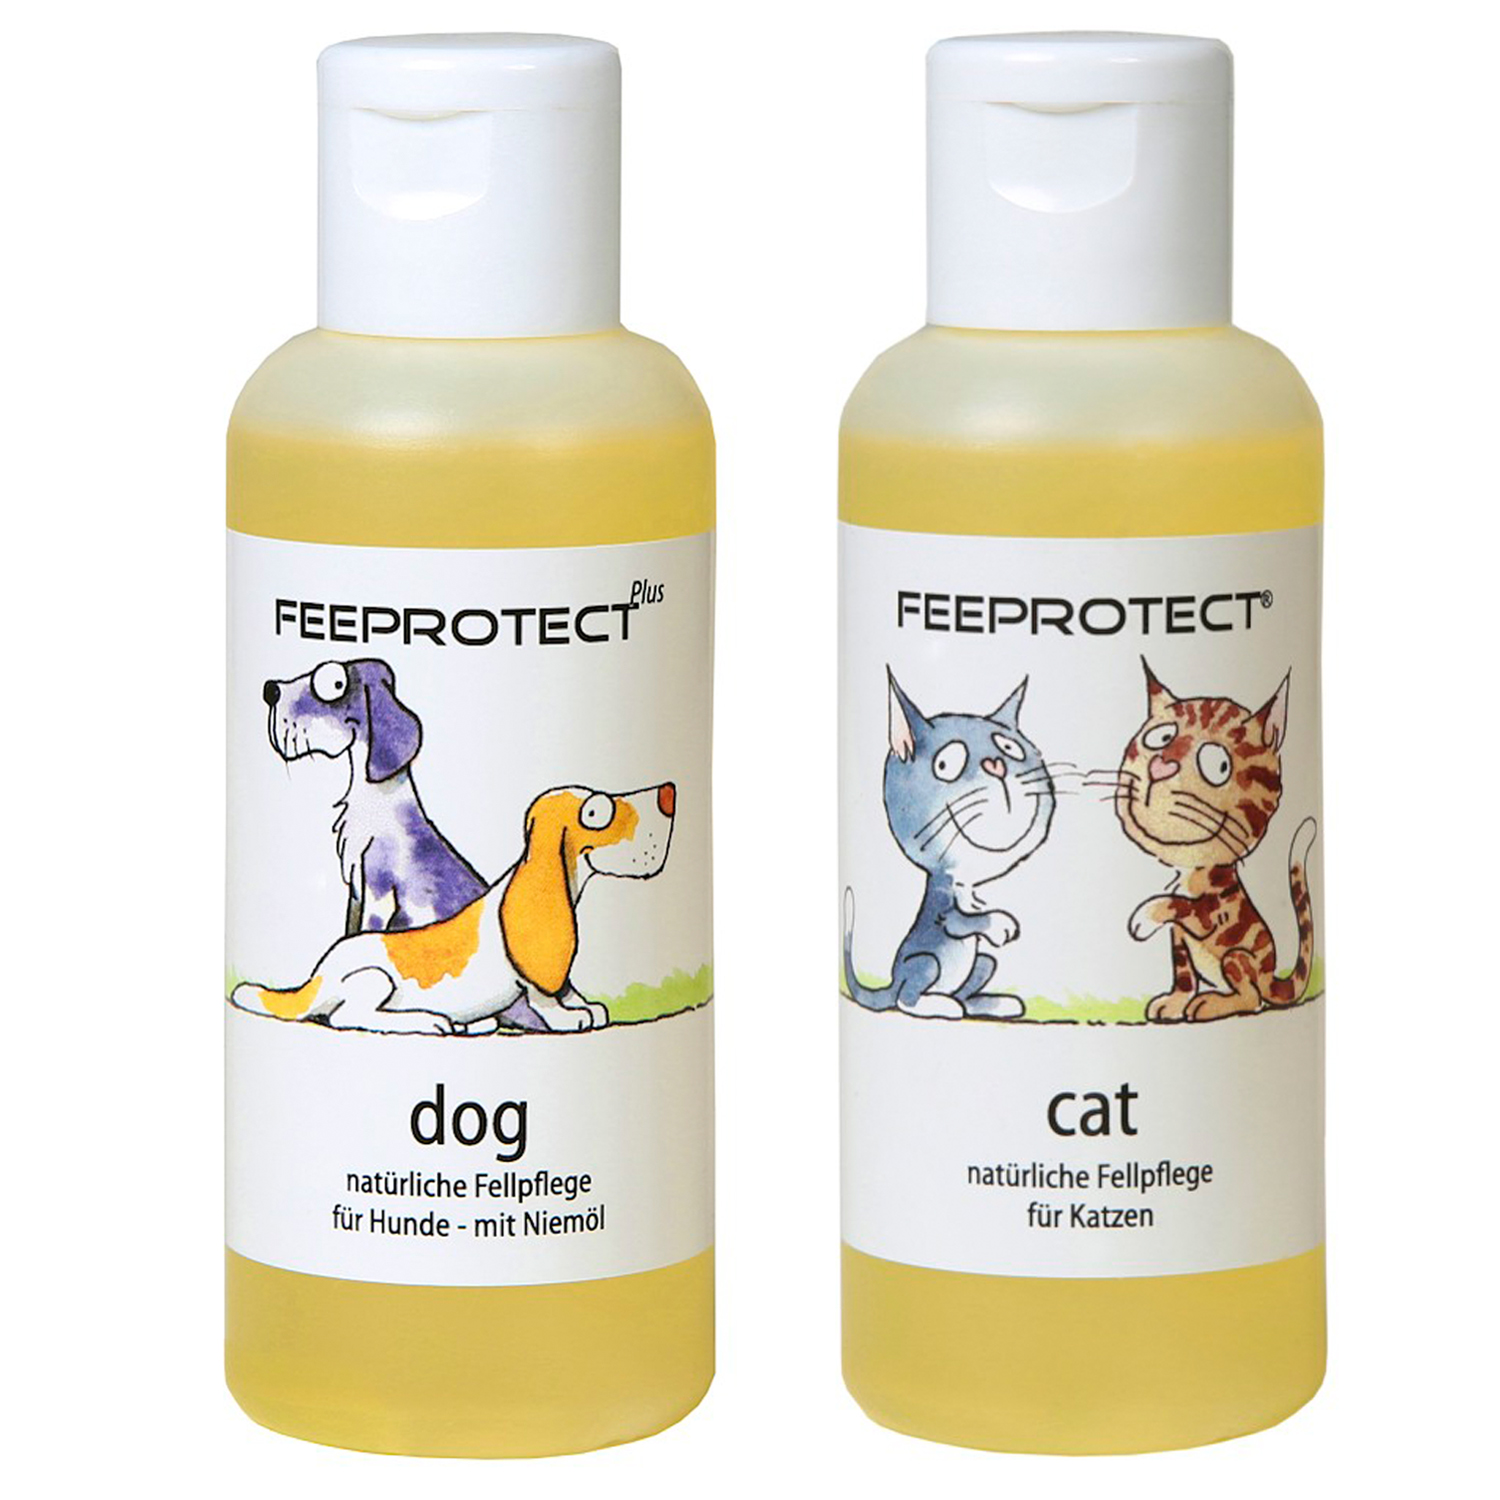 Feeprotect ® dog plus und cat Fellpflege